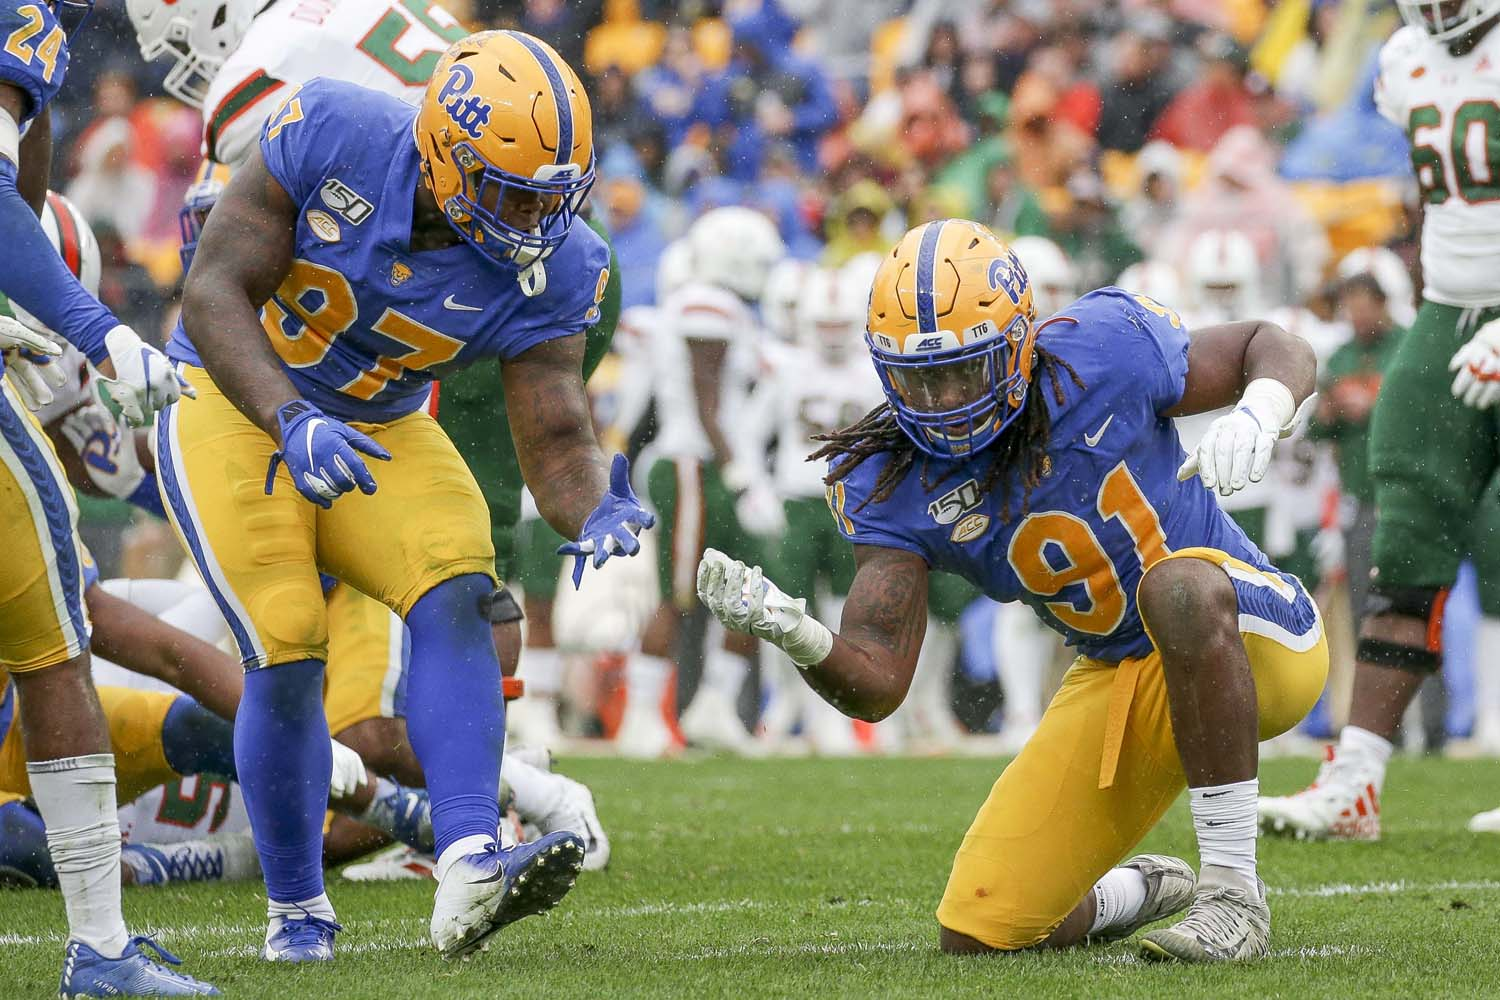 Pitt's defense held Miami to only 80 yards rushing on the ground during Saturday's 16-12 loss to the Hurricanes.